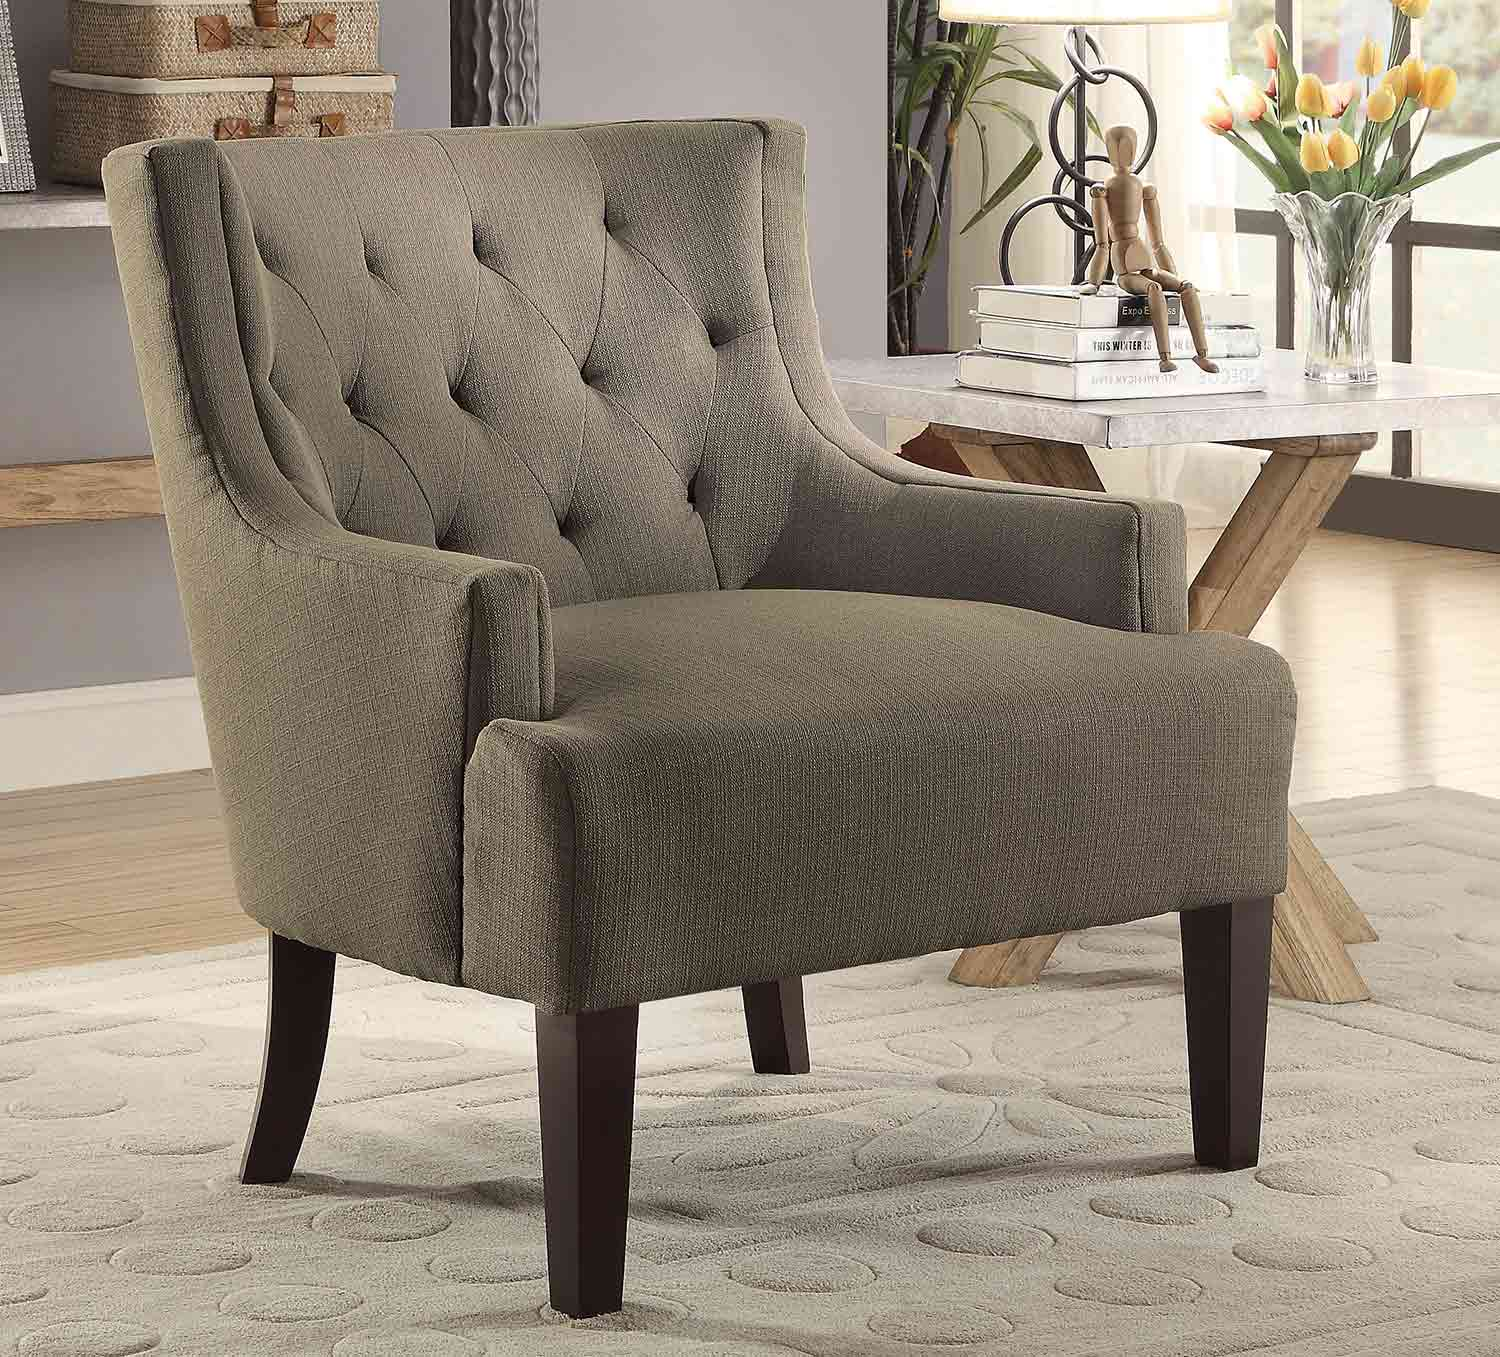 Homelegance Dulce Accent Chair Grey 1233GY